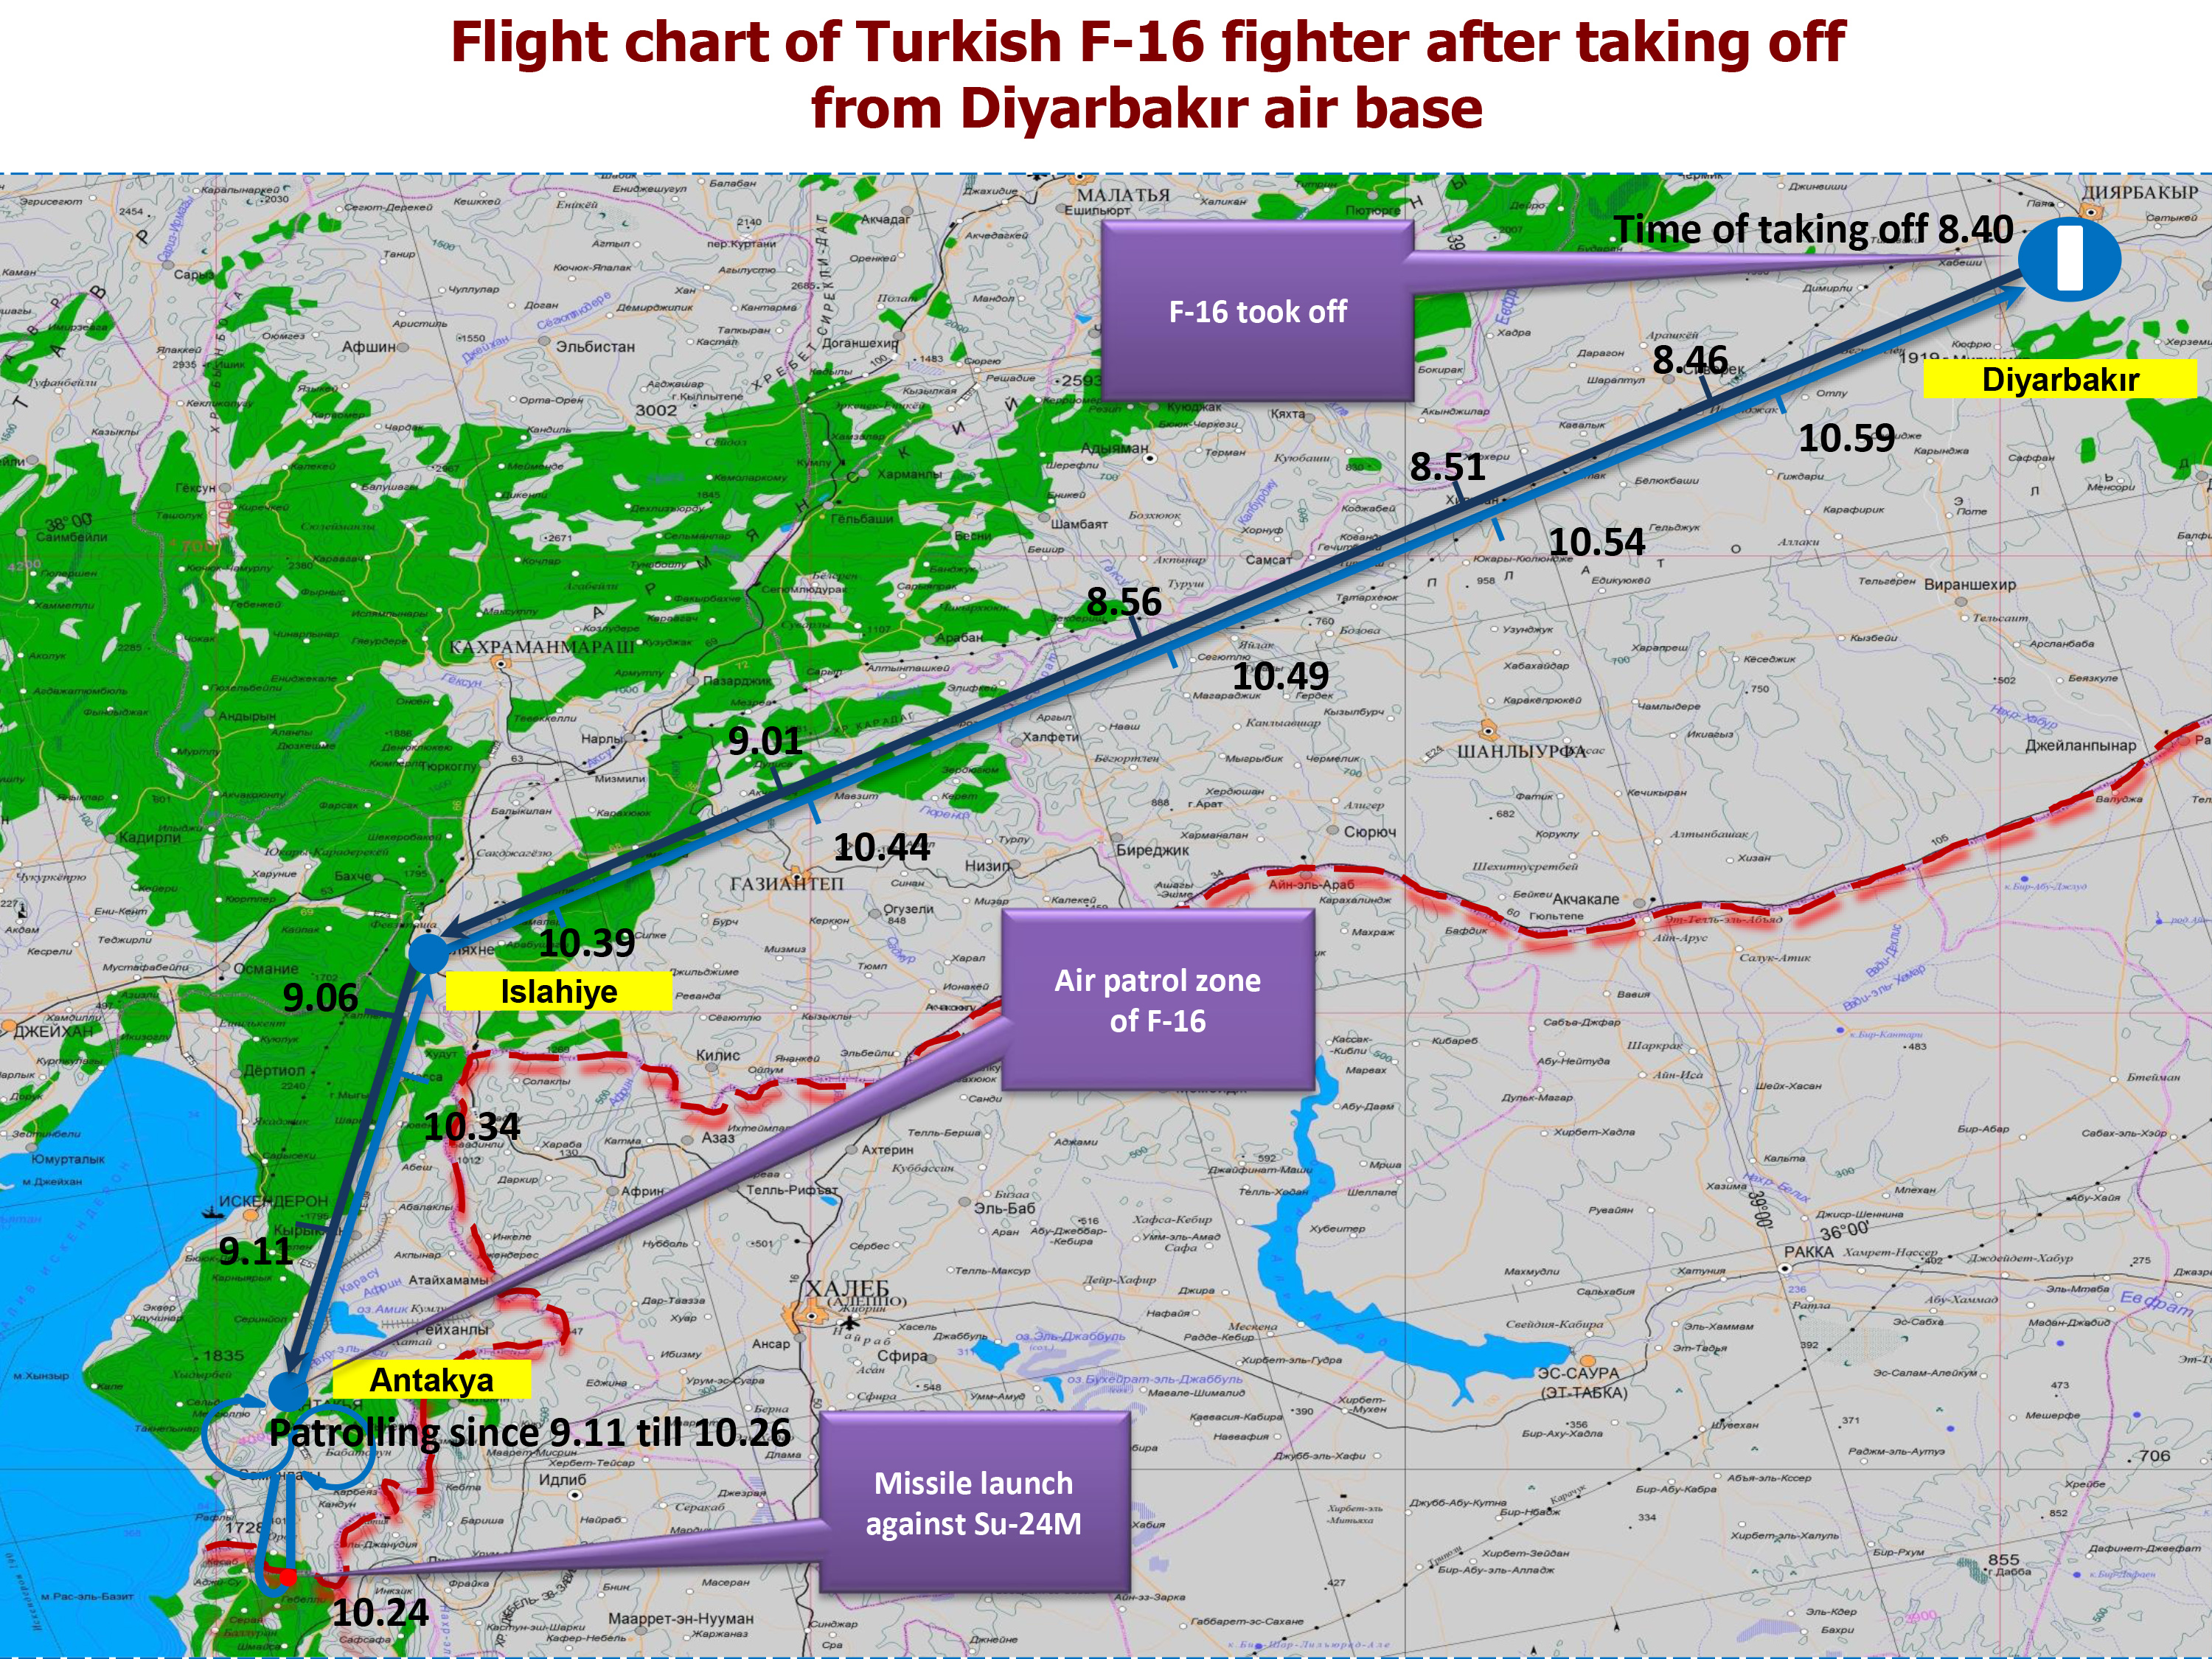 Russian military intervention and aid to Syria #6 - Page 4 Chart_F16_flight_eng